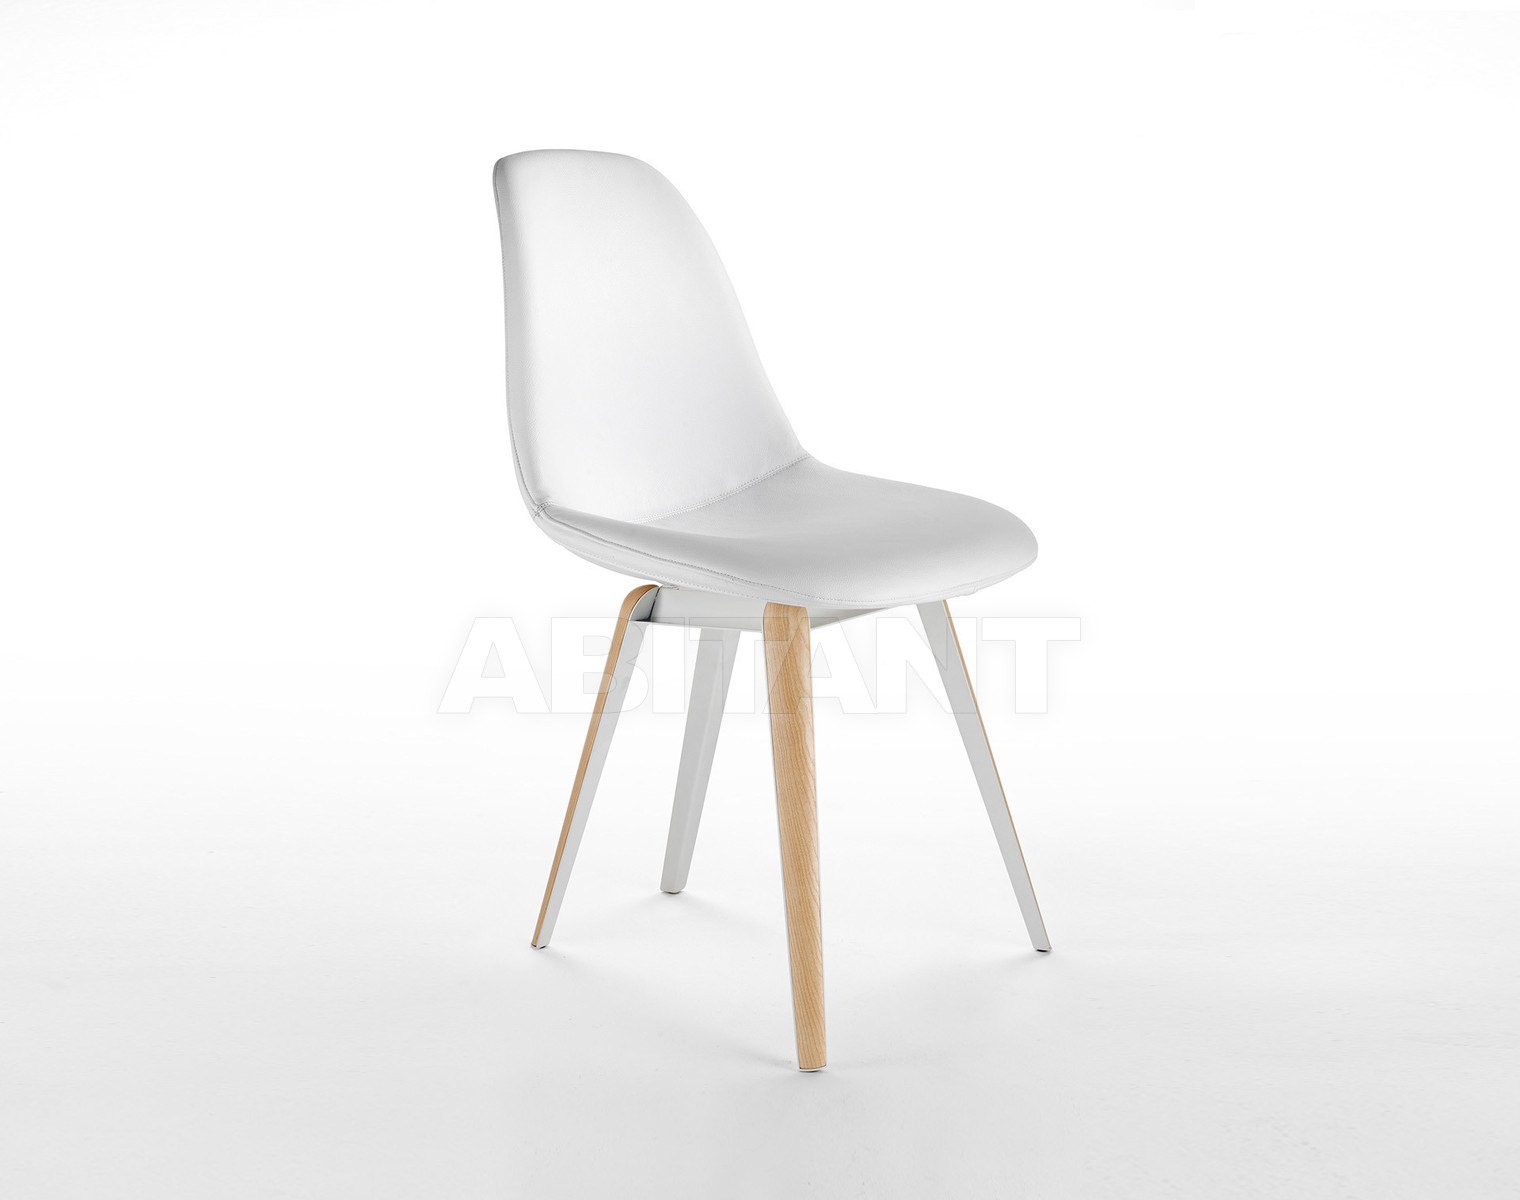 Купить Стул Kubikoff Sander Mulder Slice'POP'Chair